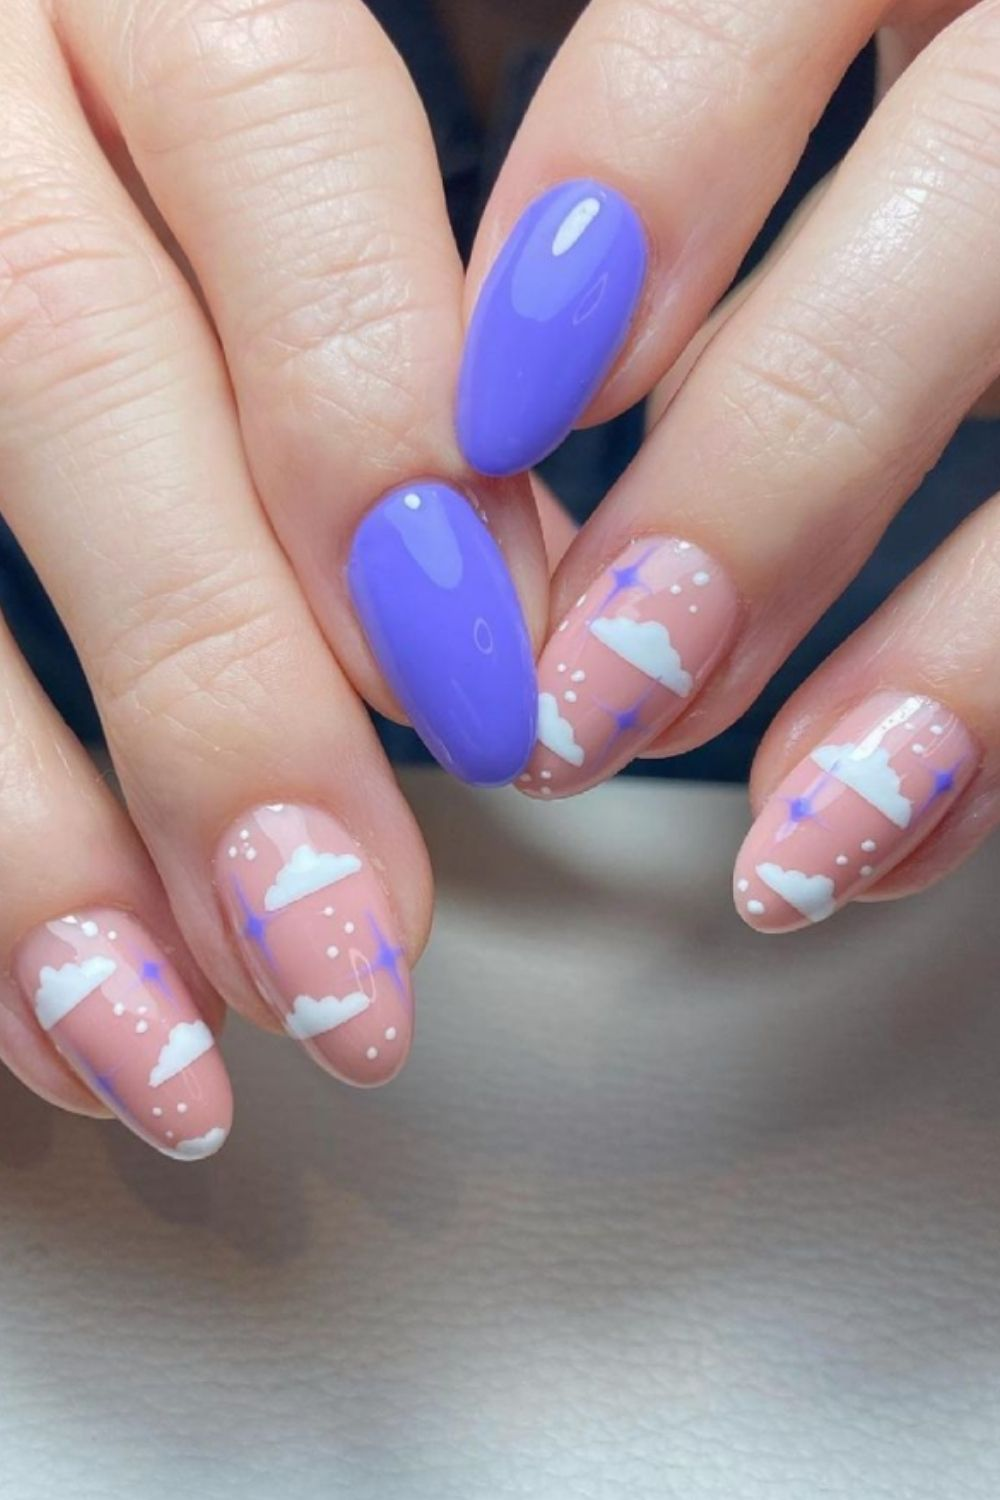 White clouds and blue almond nails art